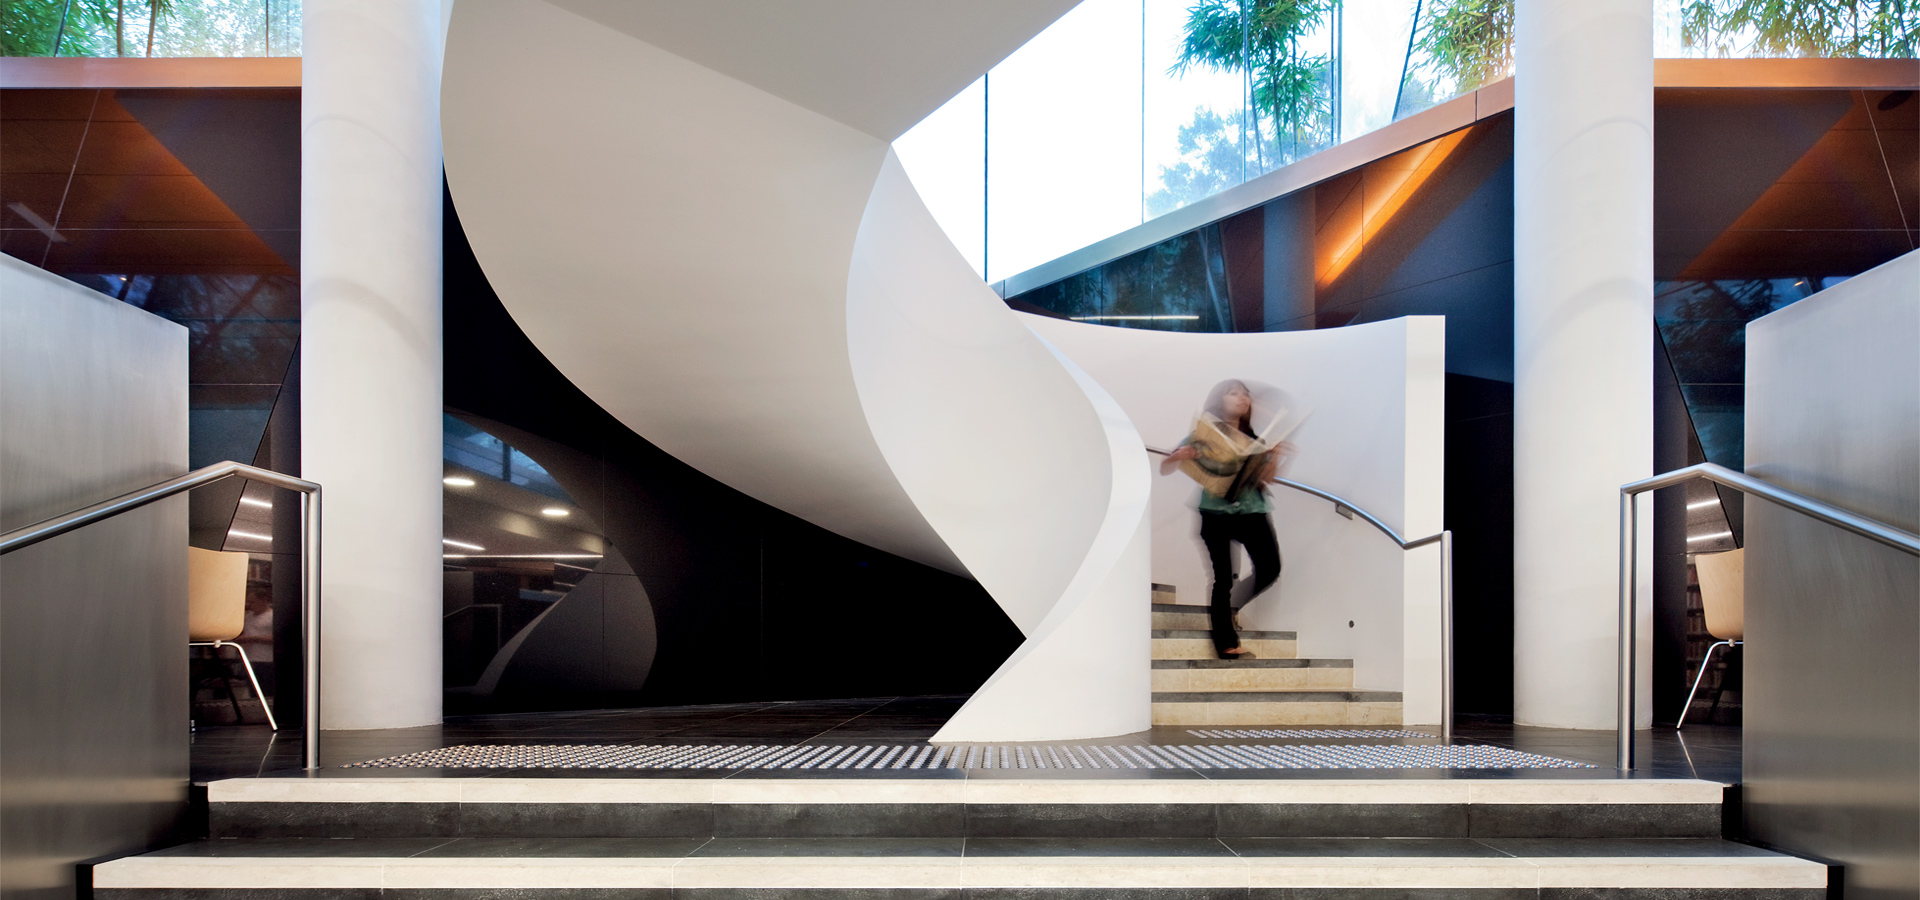 Surry Hills Library and Community Centre designed by fjmt